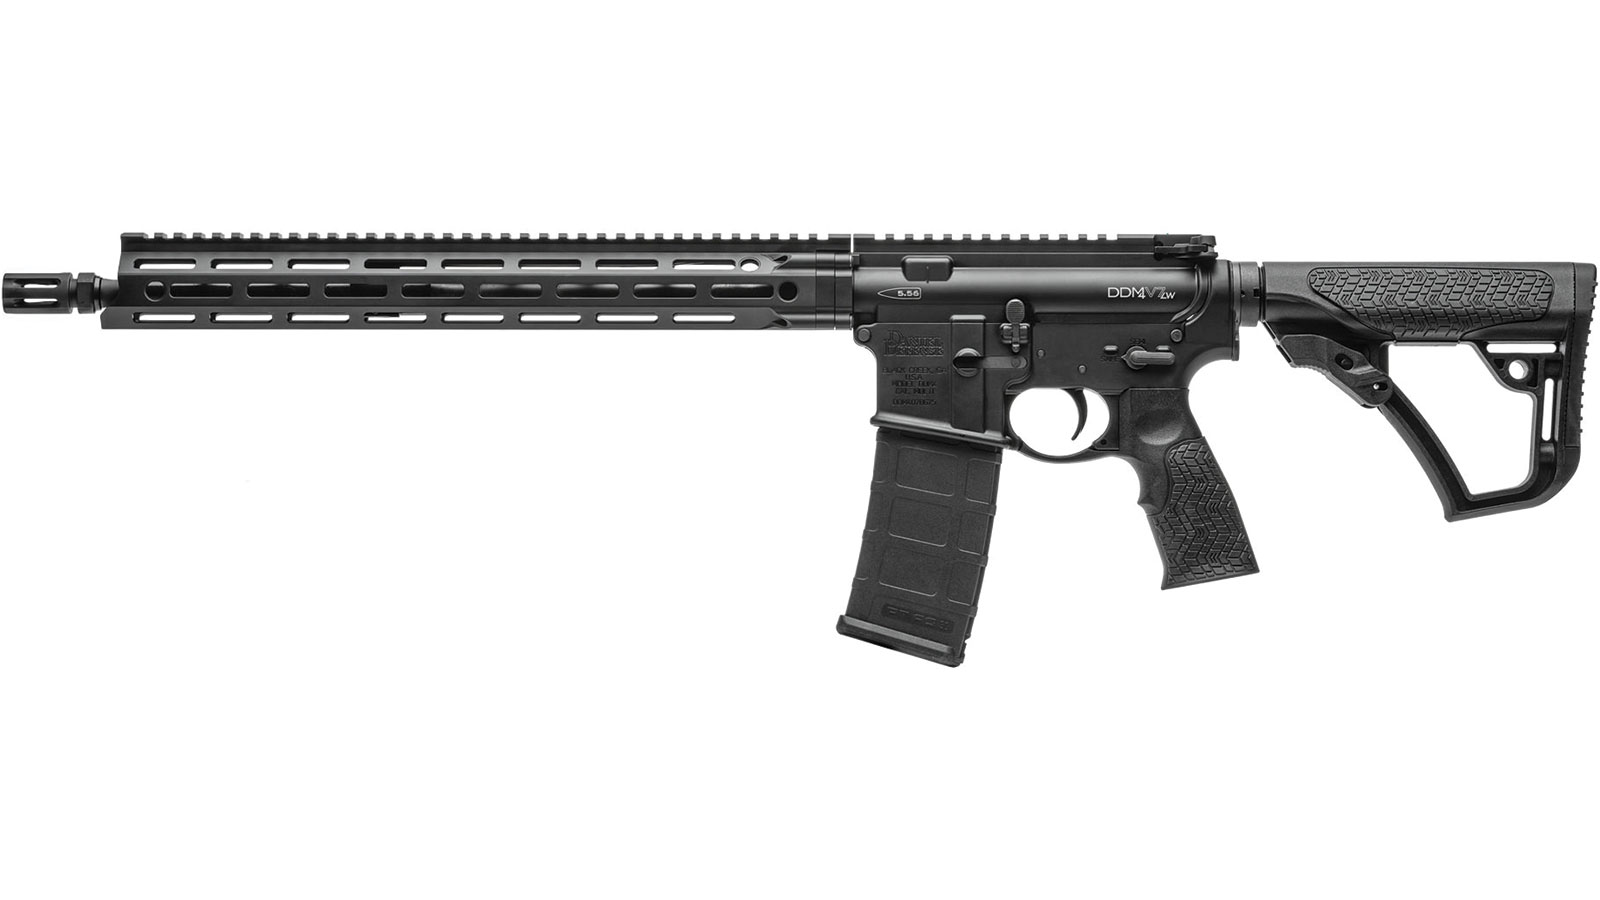 Daniel Defense 02241047 DDM4 V7 LW Semi-Automatic 223 Remington|5.56 NATO 16 30+1 in.